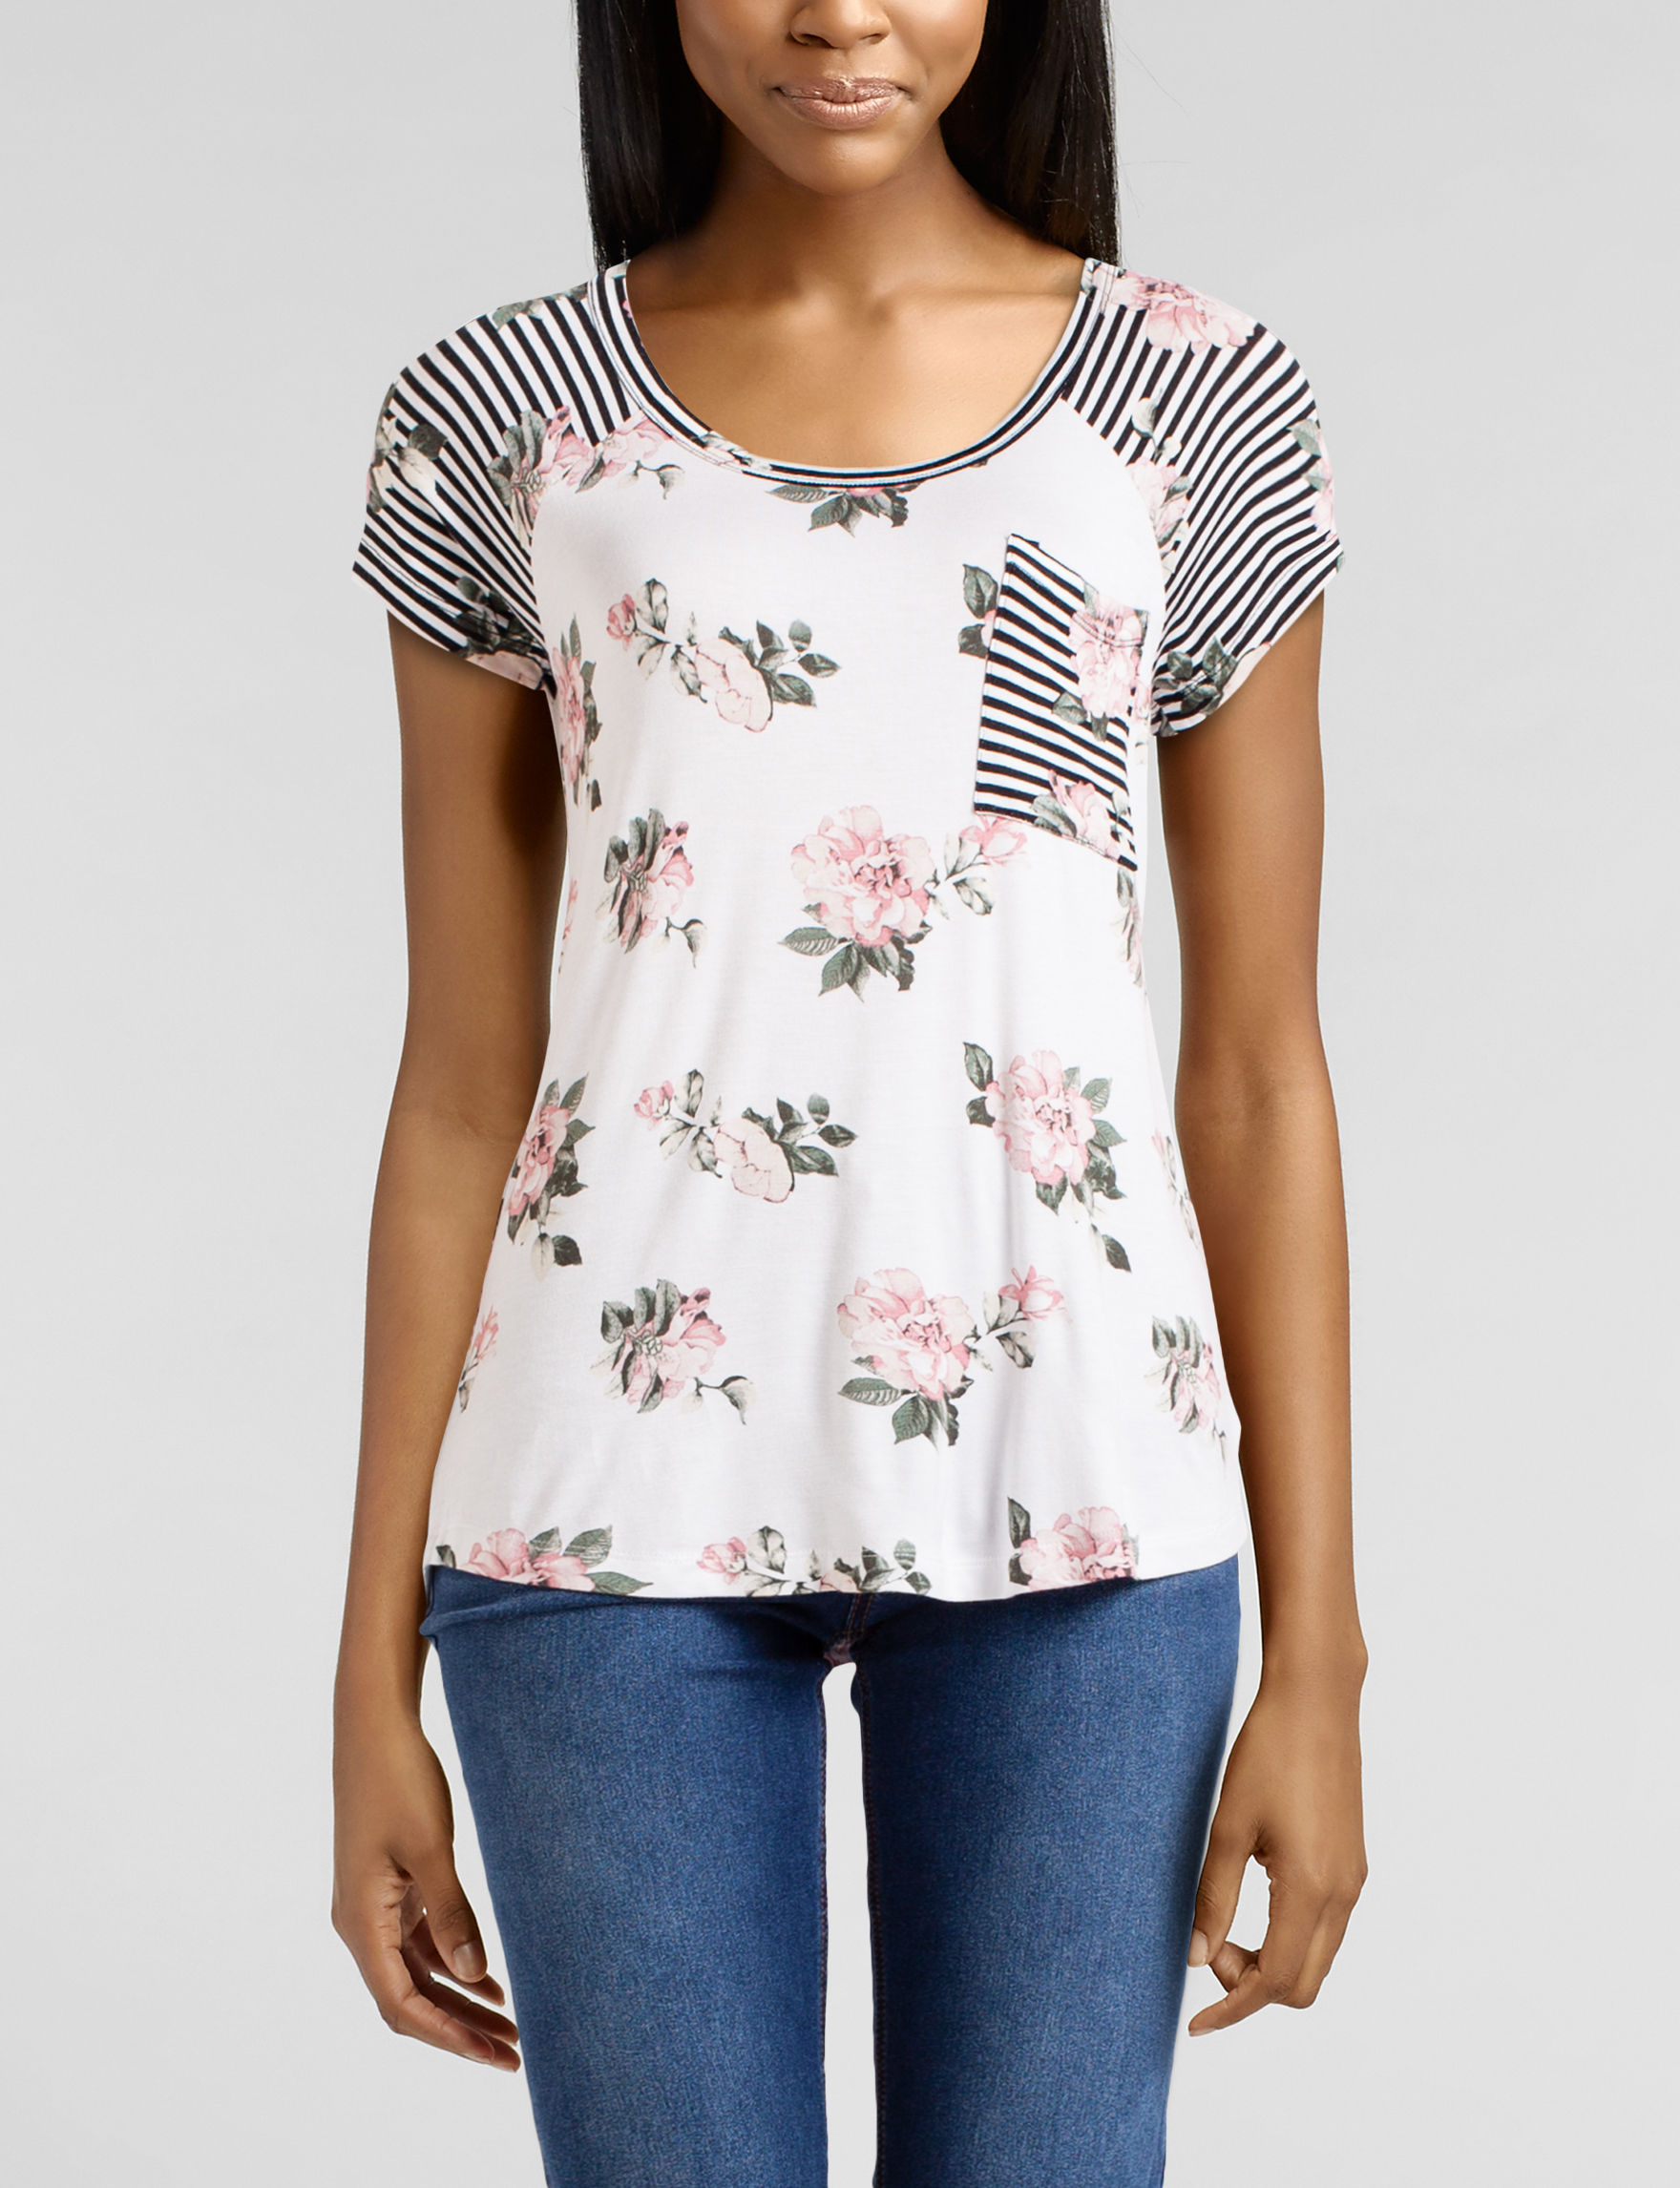 Wishful Park Ivory Floral Tees & Tanks